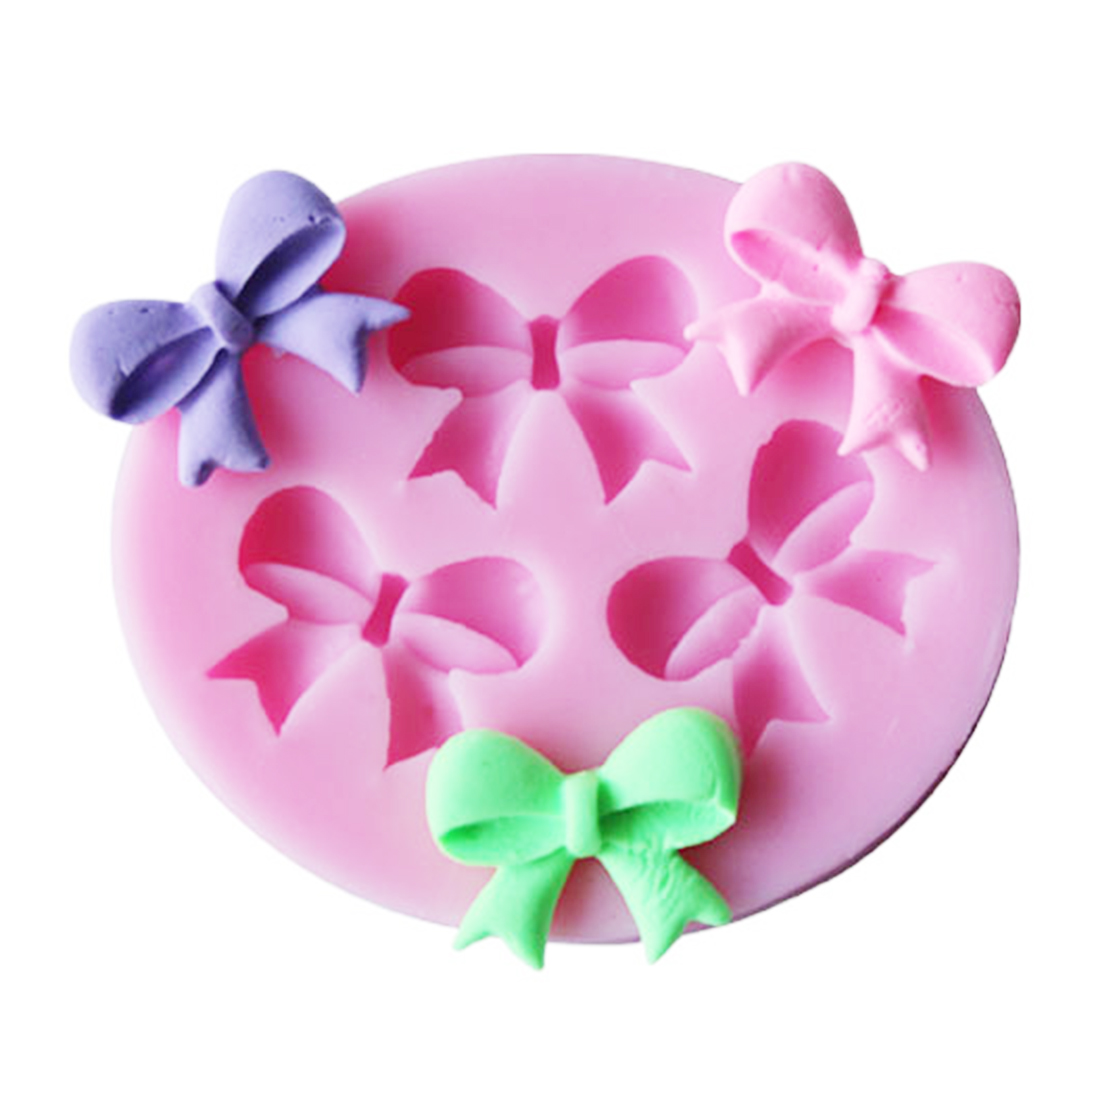 1pc <font><b>Cake</b></font> <font><b>Mold</b></font> Bowknots Flower 3D <font><b>Fondant</b></font> <font><b>Mold</b></font> <font><b>Silicone</b></font> <font><b>Cake</b></font> <font><b>Decorating</b></font> <font><b>Tool</b></font> Chocolate Soap Stencils Kitchen Baking Accessories image